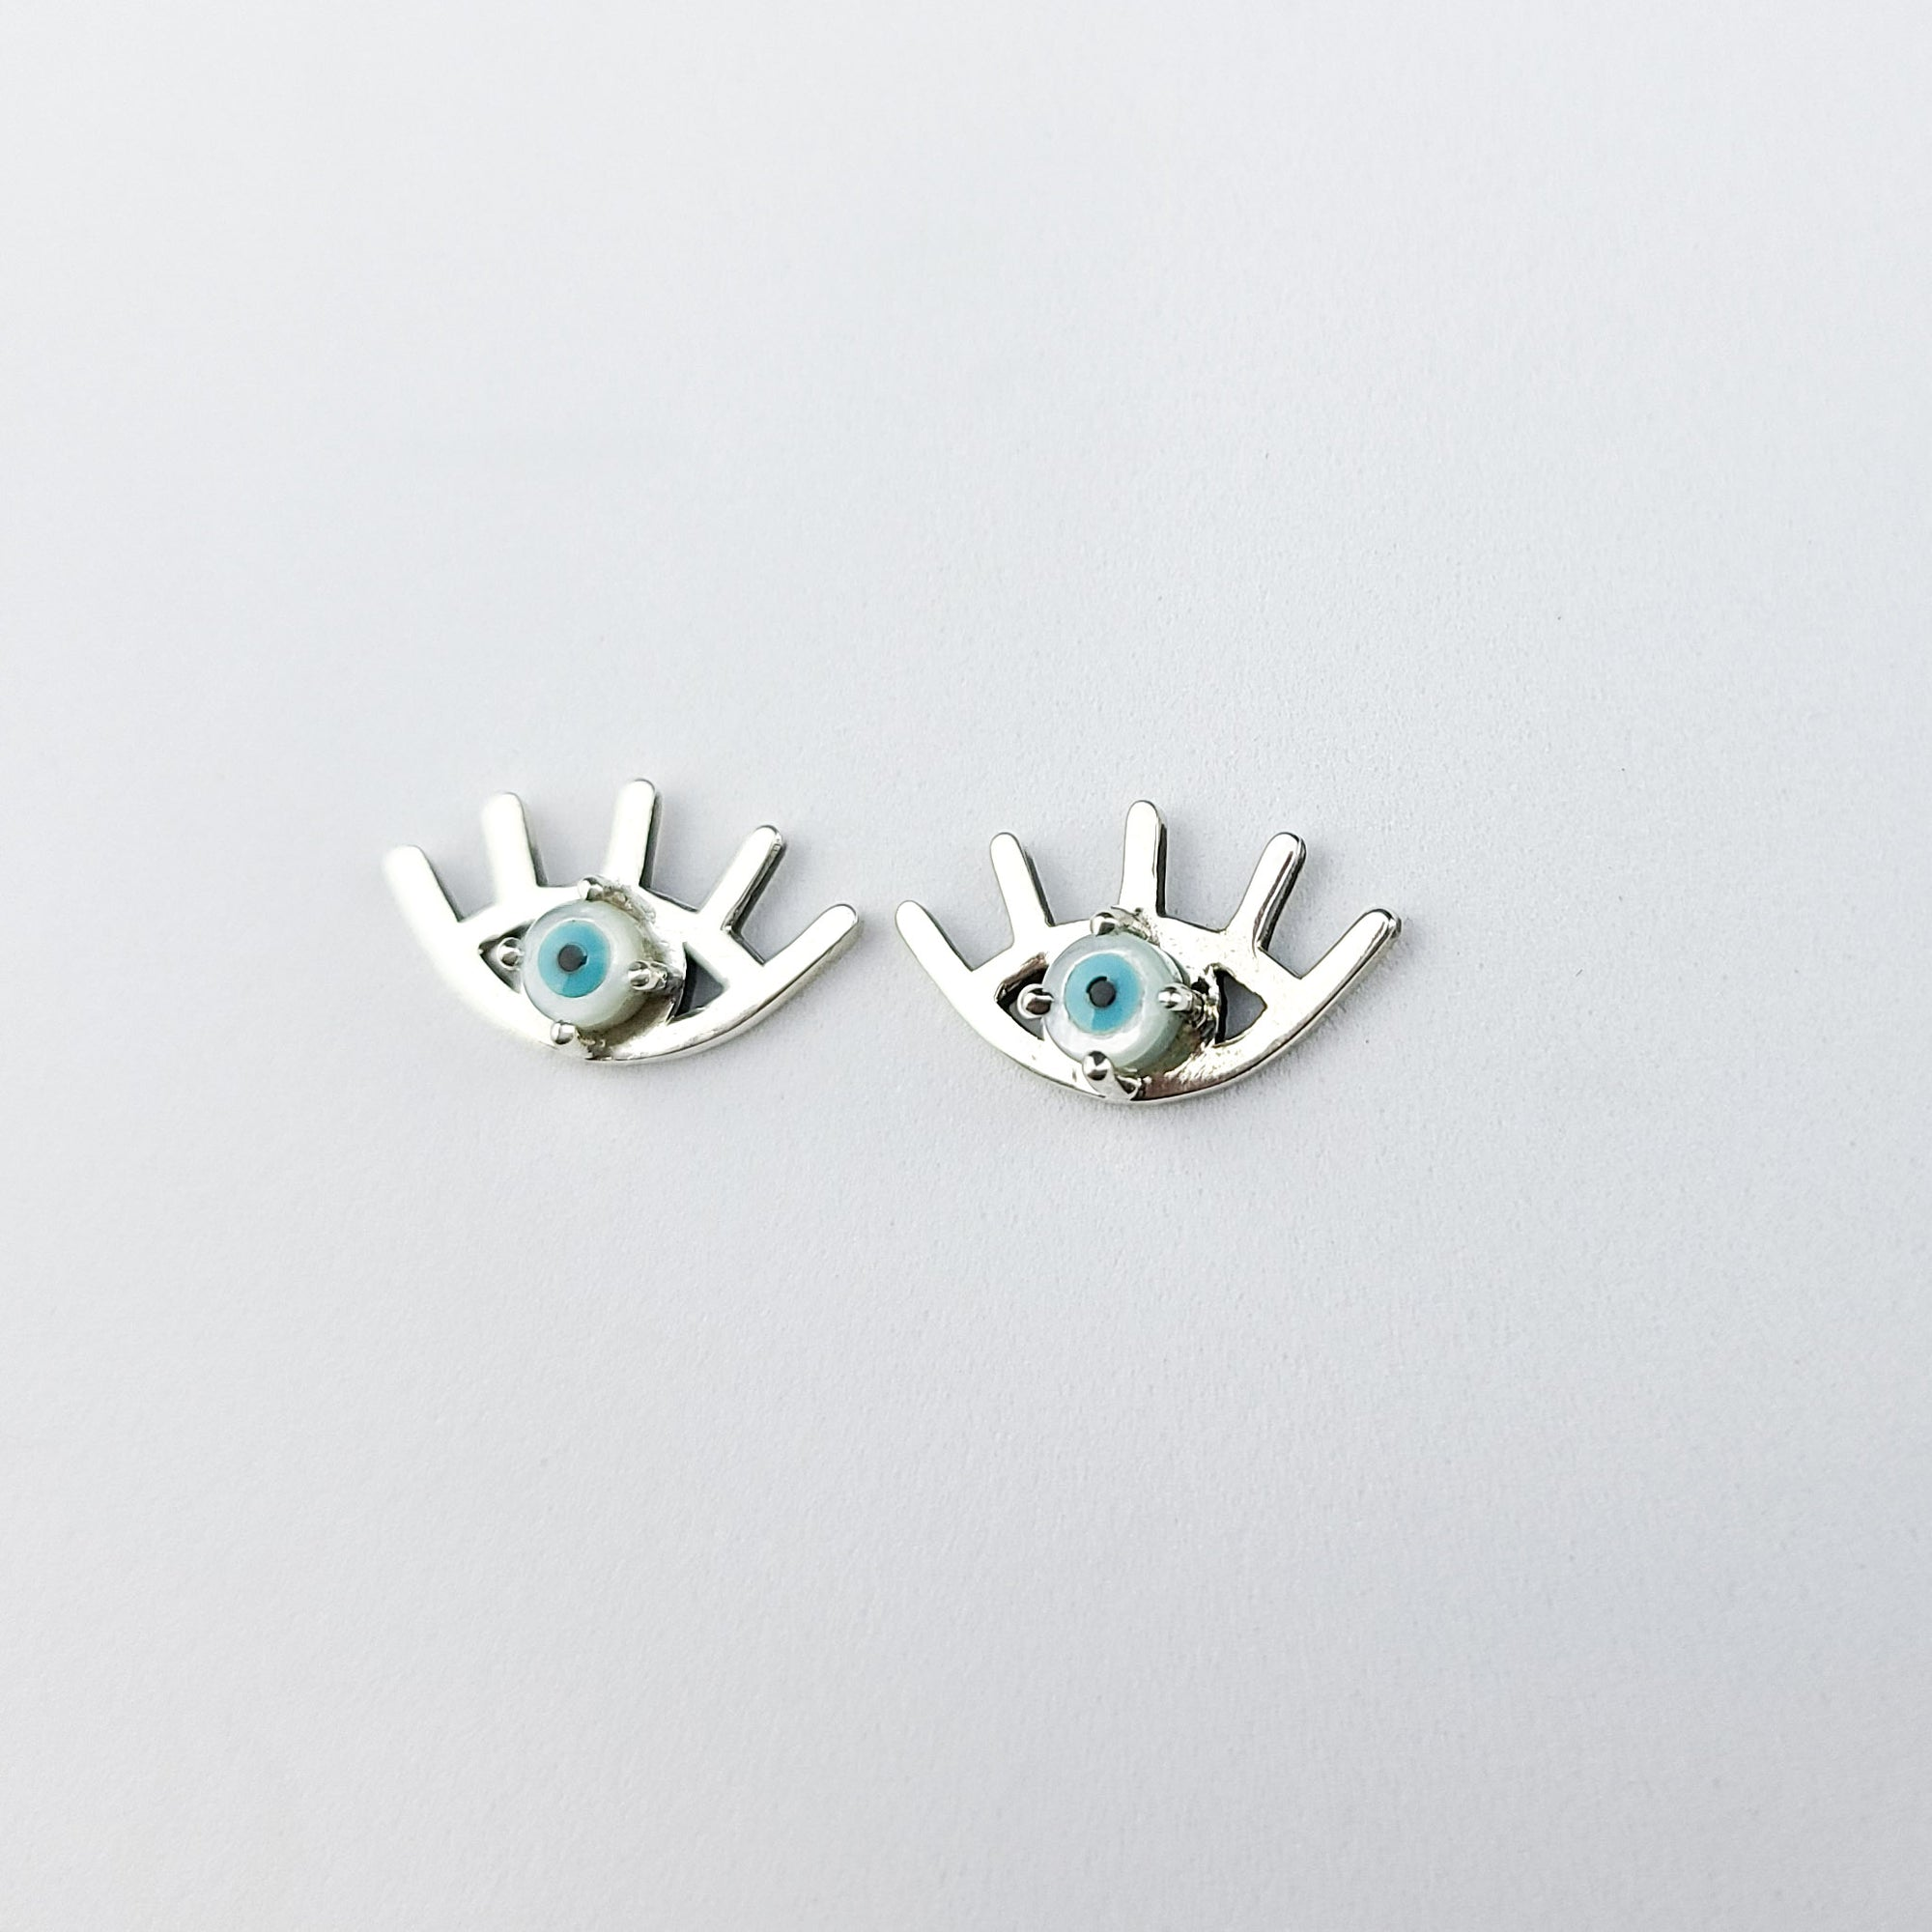 Mother of Pearl Evil Eye Stud Earrings